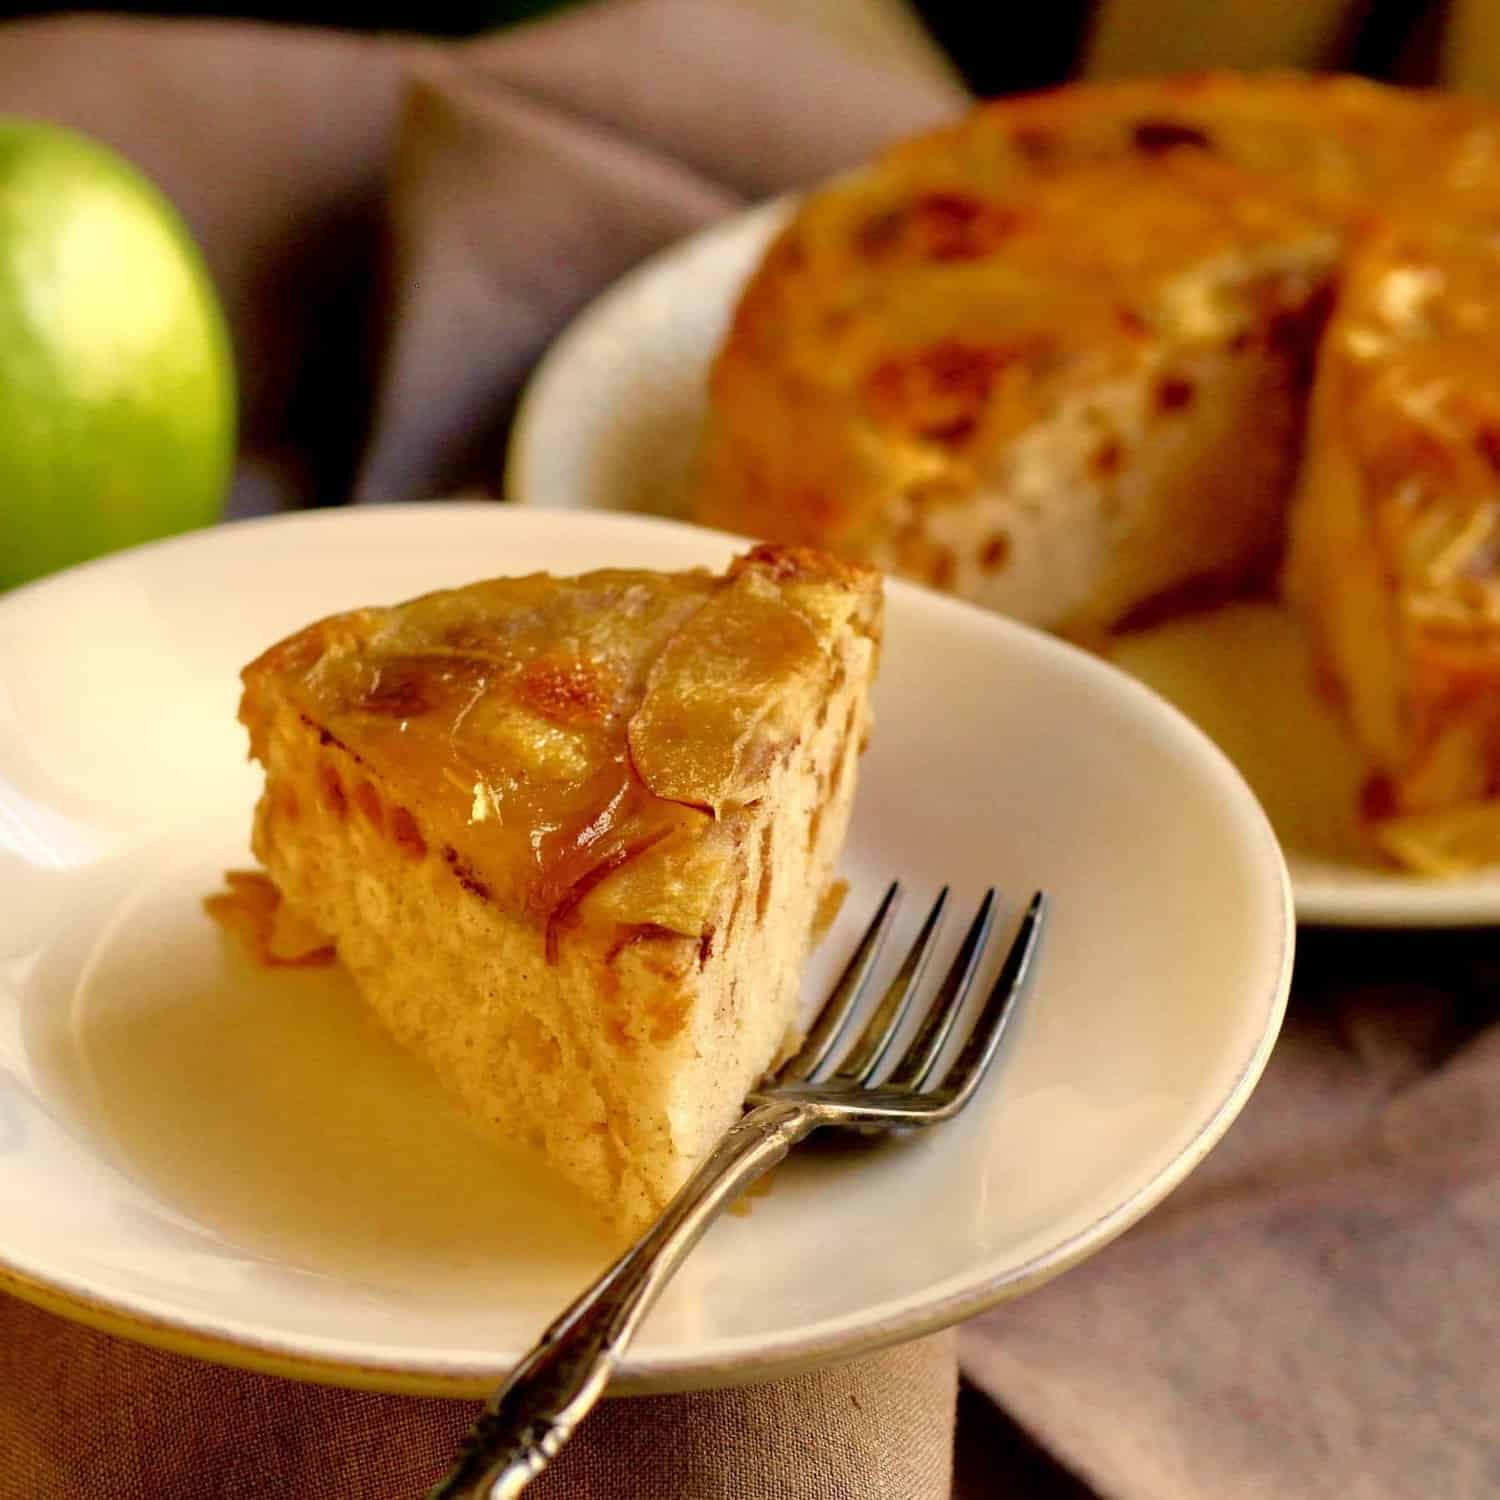 A slice of instant pot apple cake in front of the whole instant pot apple dessert.